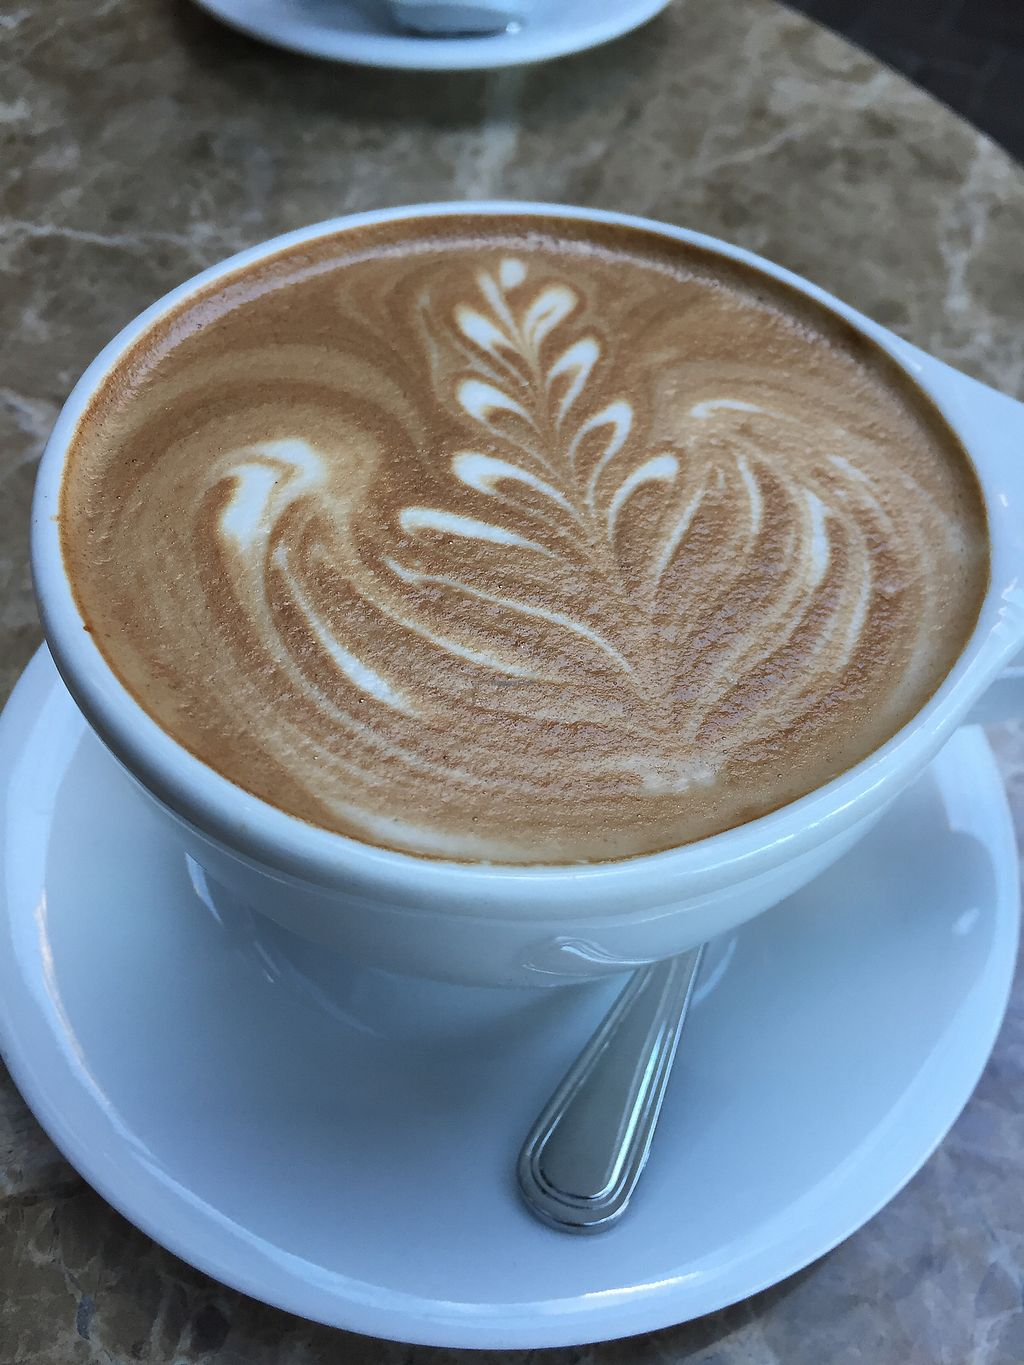 "Photo of Freesoulcaffe  by <a href=""/members/profile/heathenvegan"">heathenvegan</a> <br/>Mocha <br/> November 22, 2017  - <a href='/contact/abuse/image/23953/328198'>Report</a>"